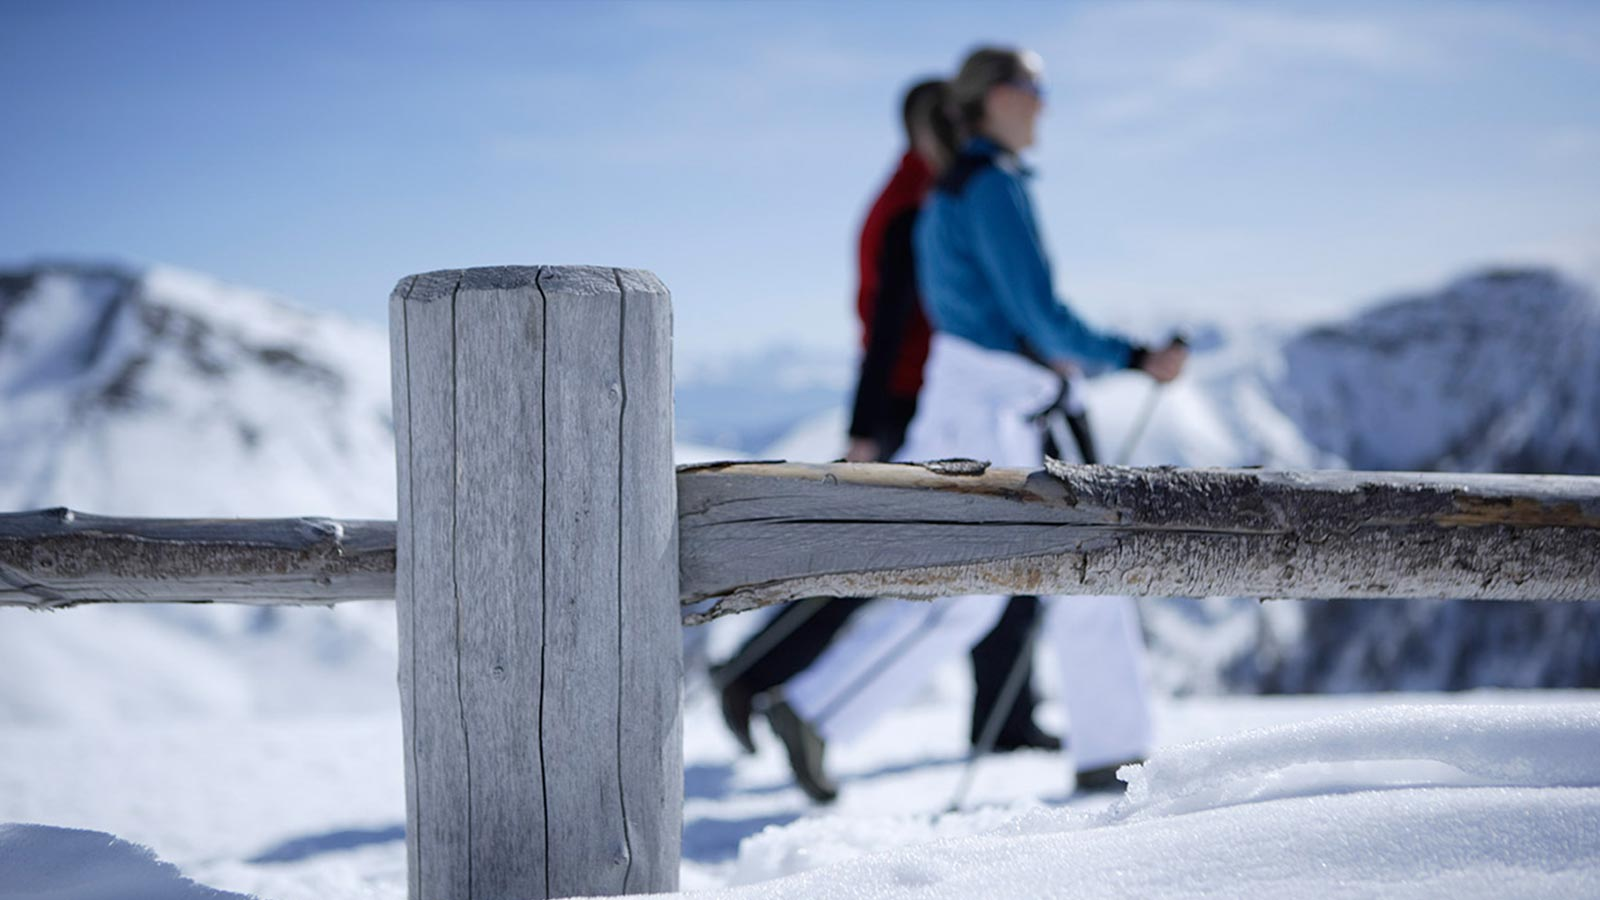 Detail of a fence with a couple walking in the snow in the background